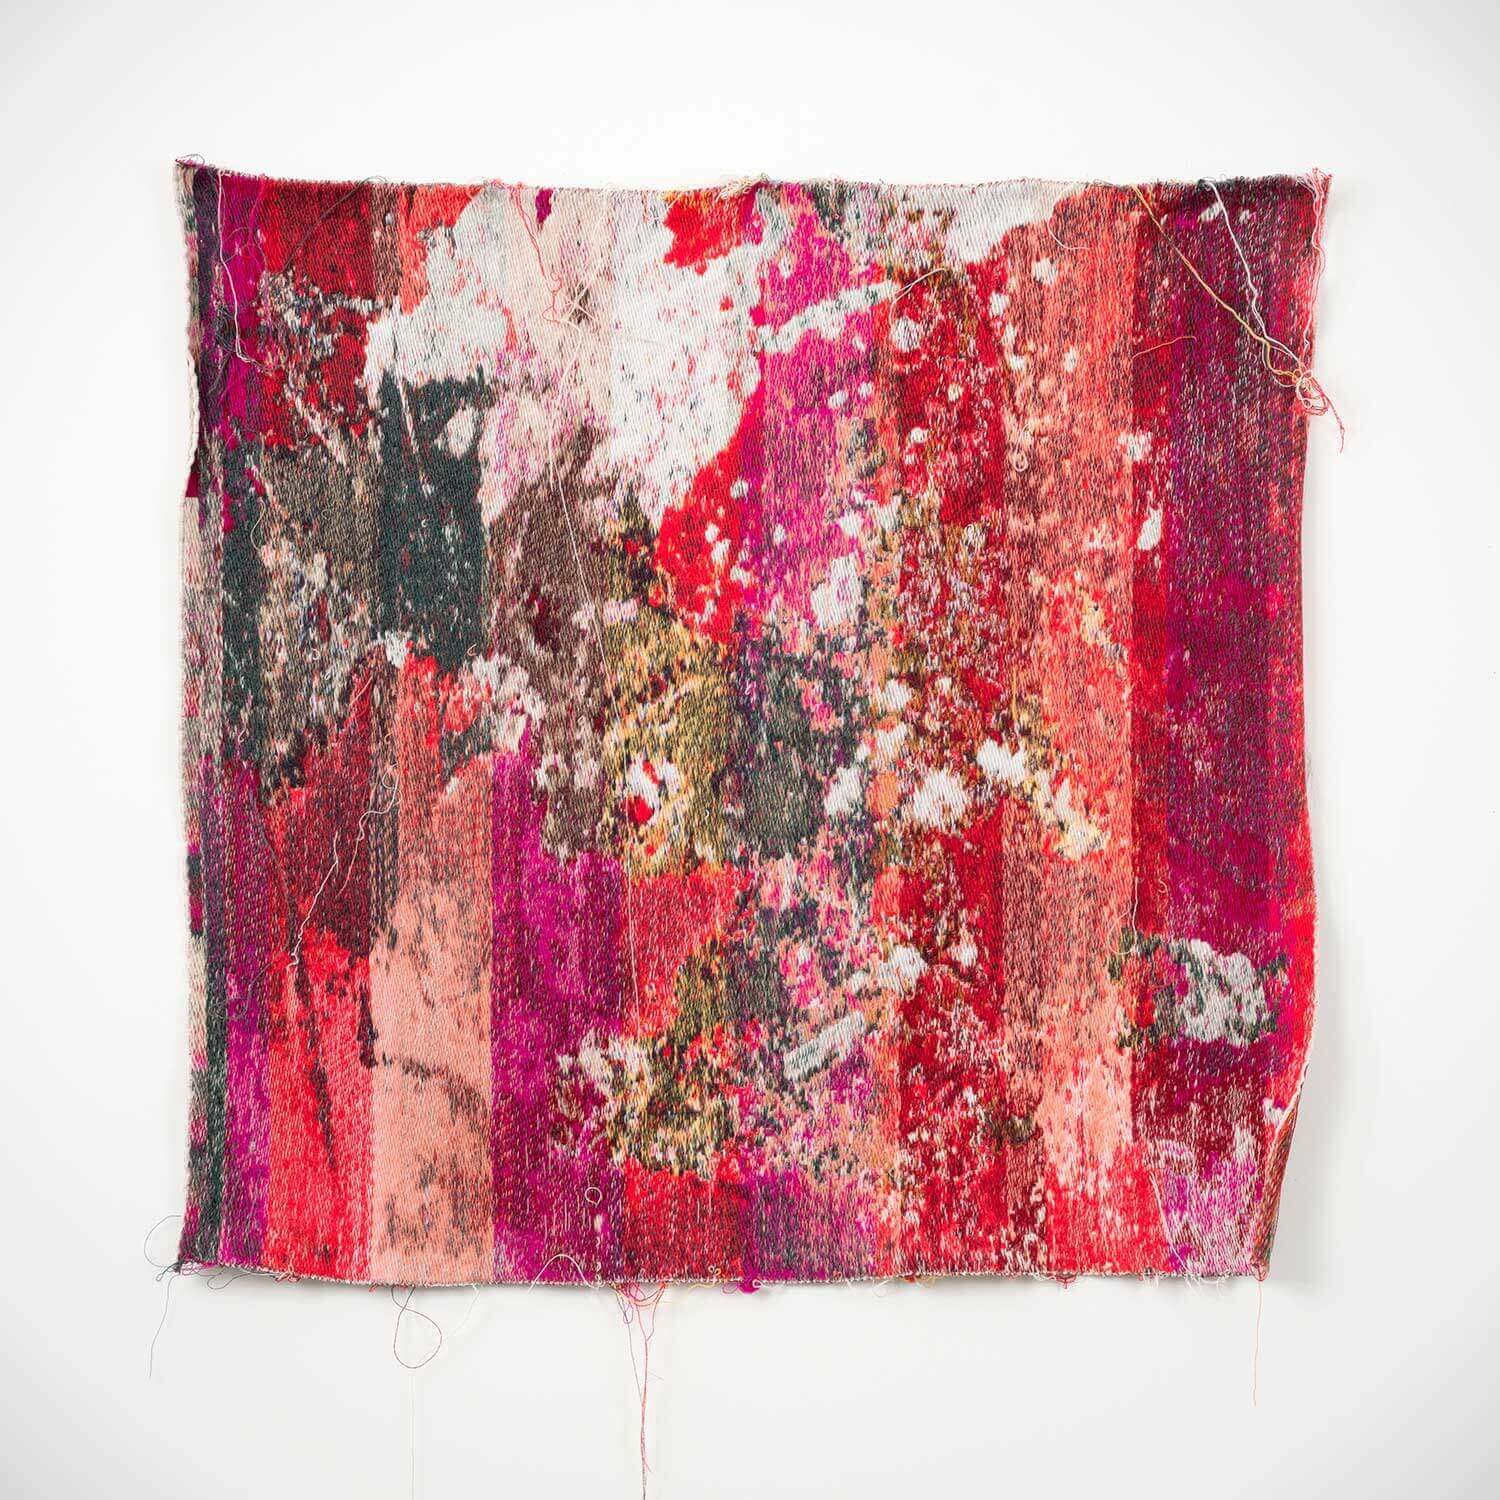 Laura Letinsky and John Paul Morabito |  Red&whiteverechadpanhudaiondaahoneymoon - wall tapestry